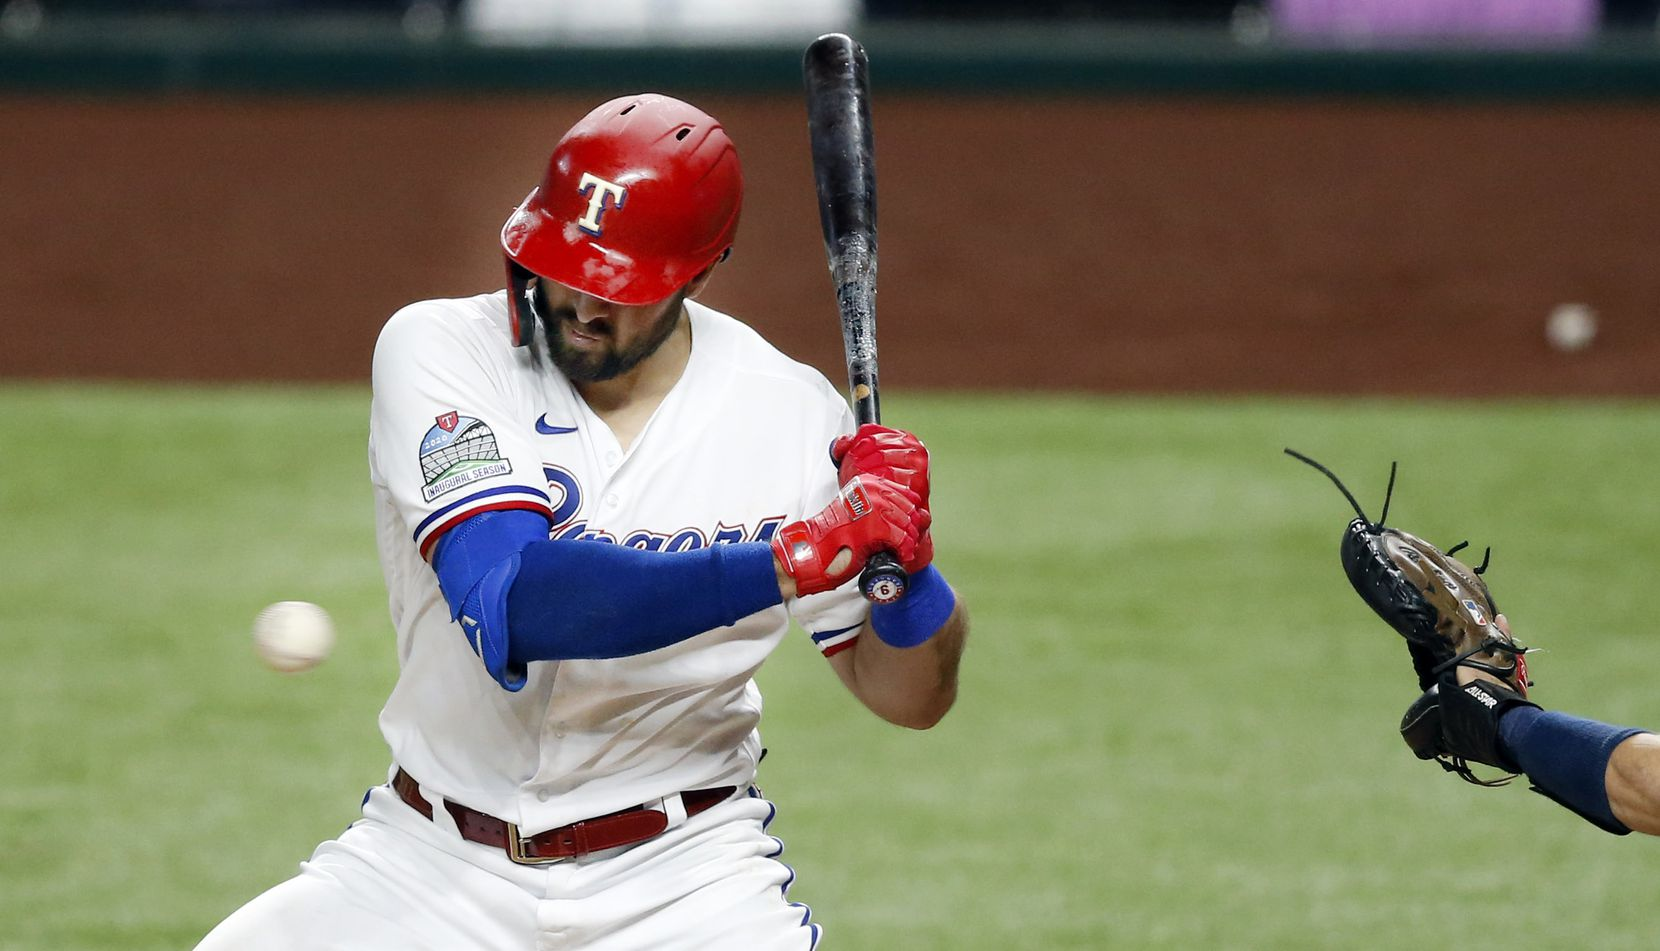 Texas Rangers center fielder Joey Gallo (13) is hit on the arm by a pitch from Seattle Mariners starting pitcher Marco Gonzales (7) in the third inning at Globe Life Field in Arlington, Tuesday, August 11, 2020. (Tom Fox/The Dallas Morning News)